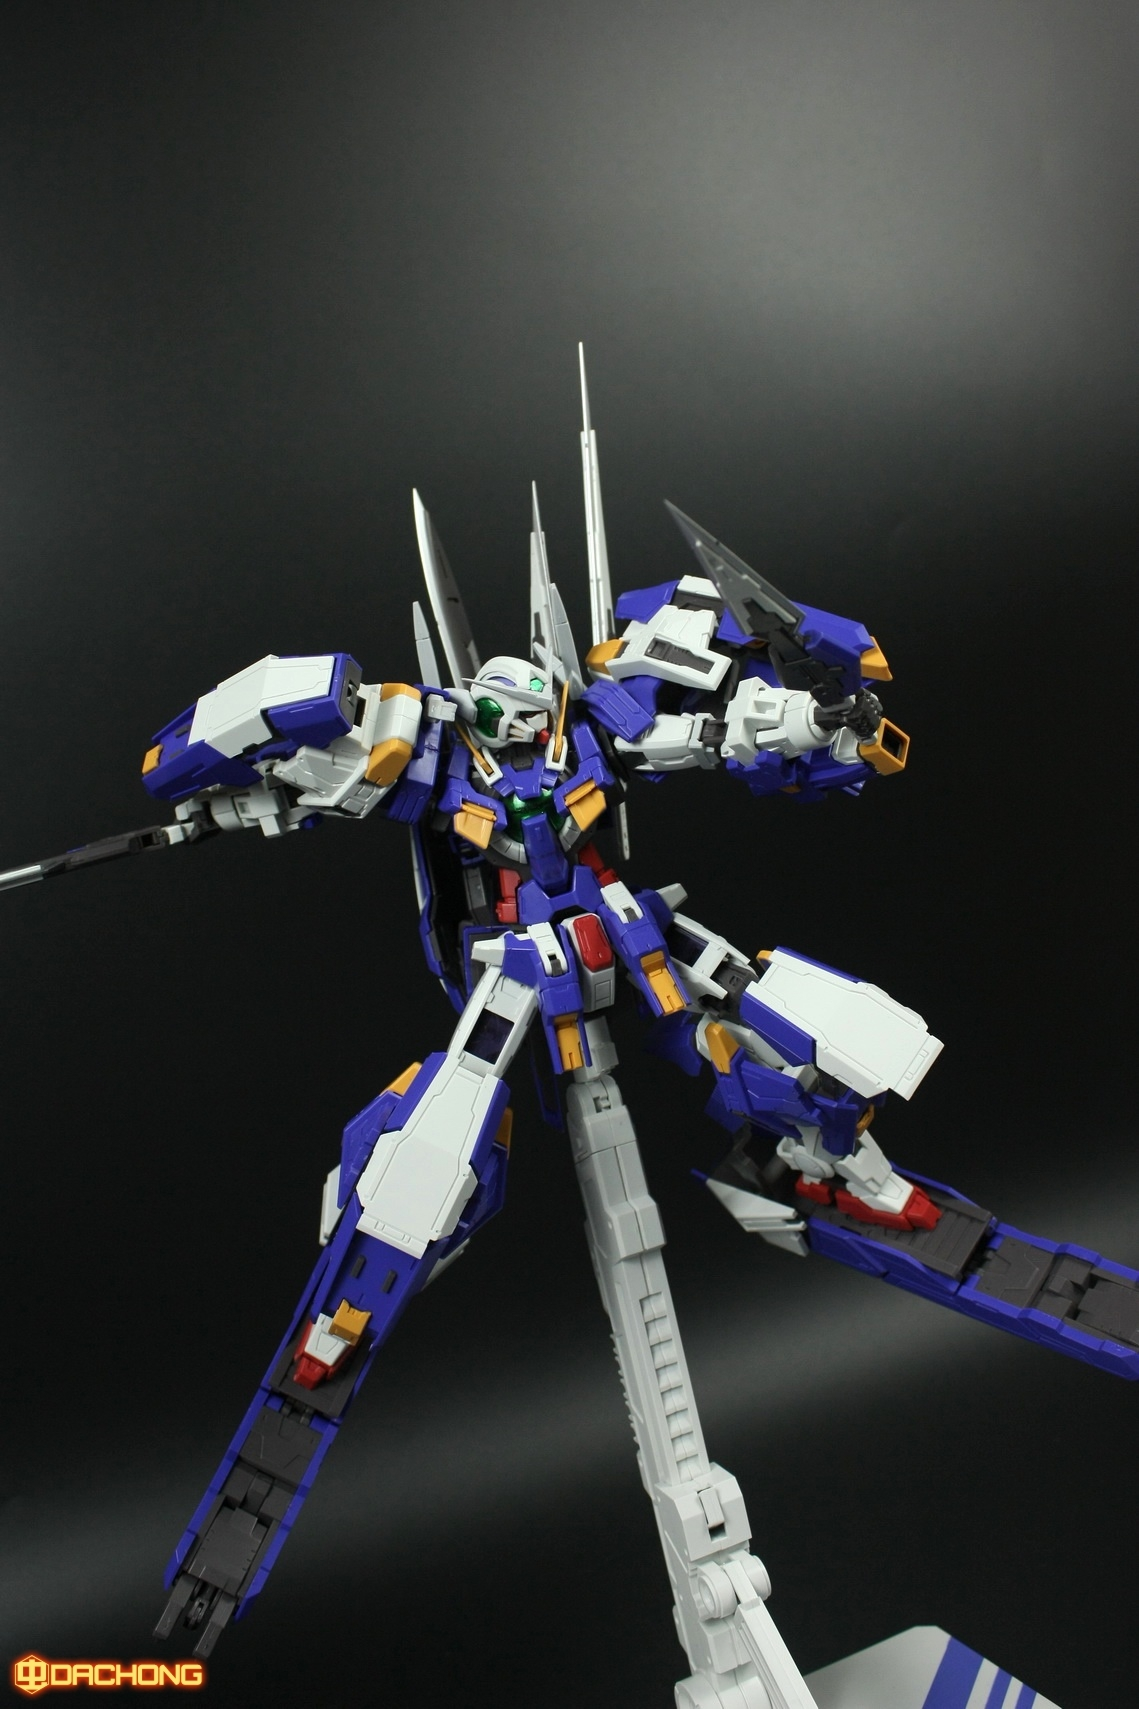 S254_MG_exia_HS_review_inask_098.jpg